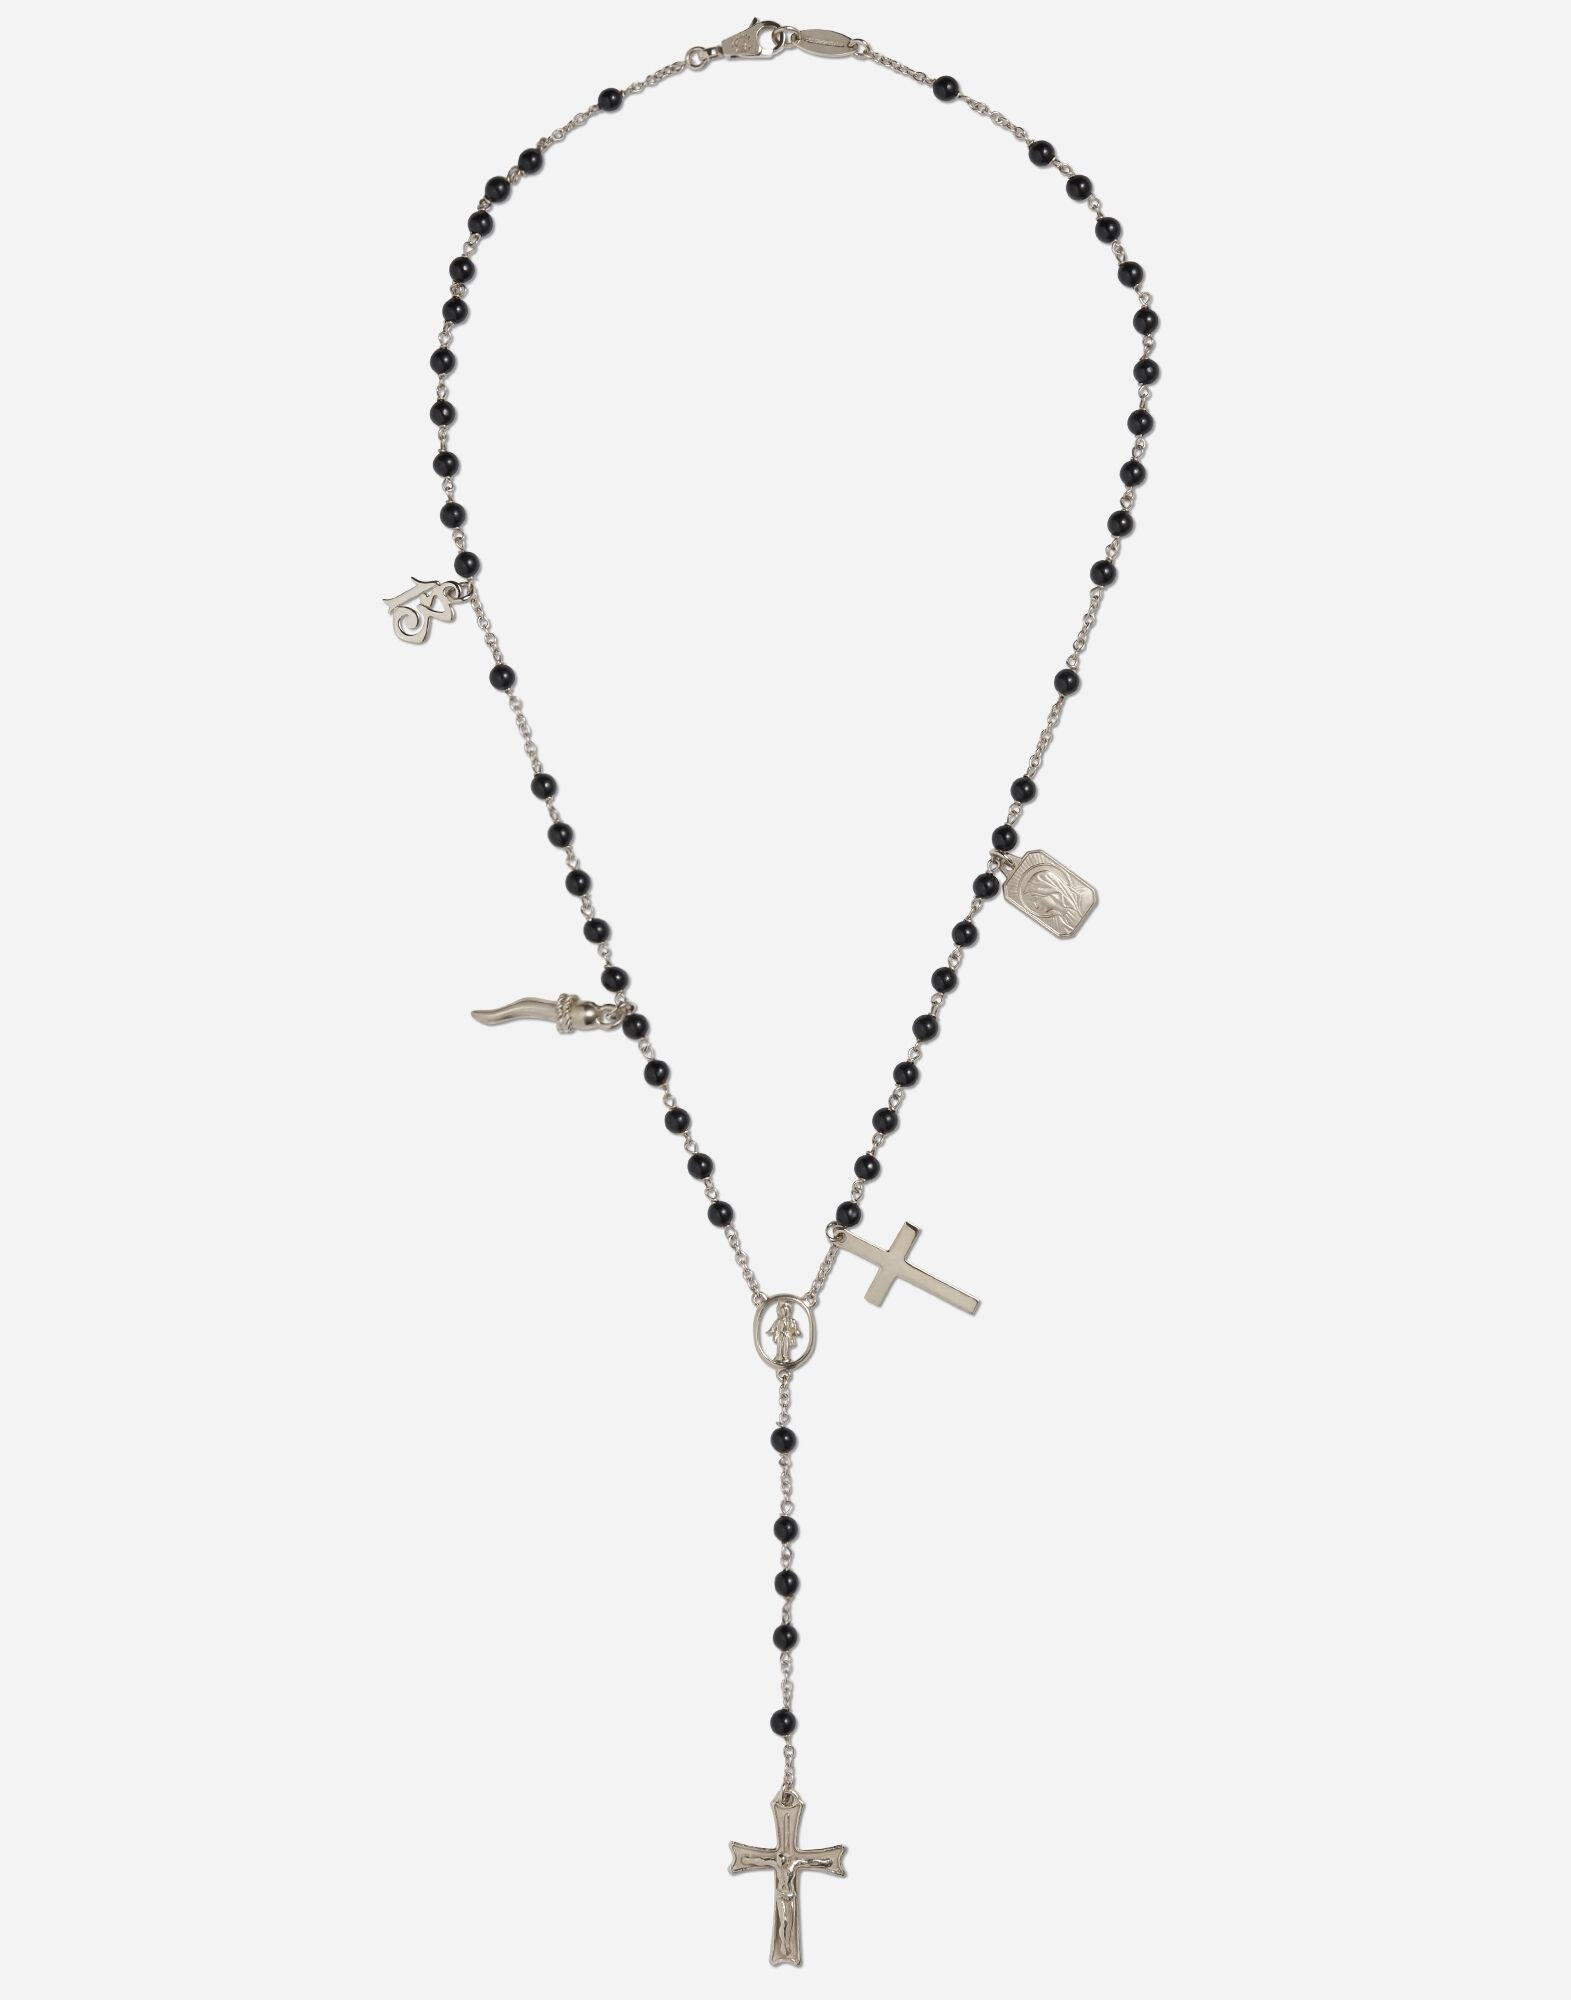 Tradition rosary necklace in white gold with black jades beads